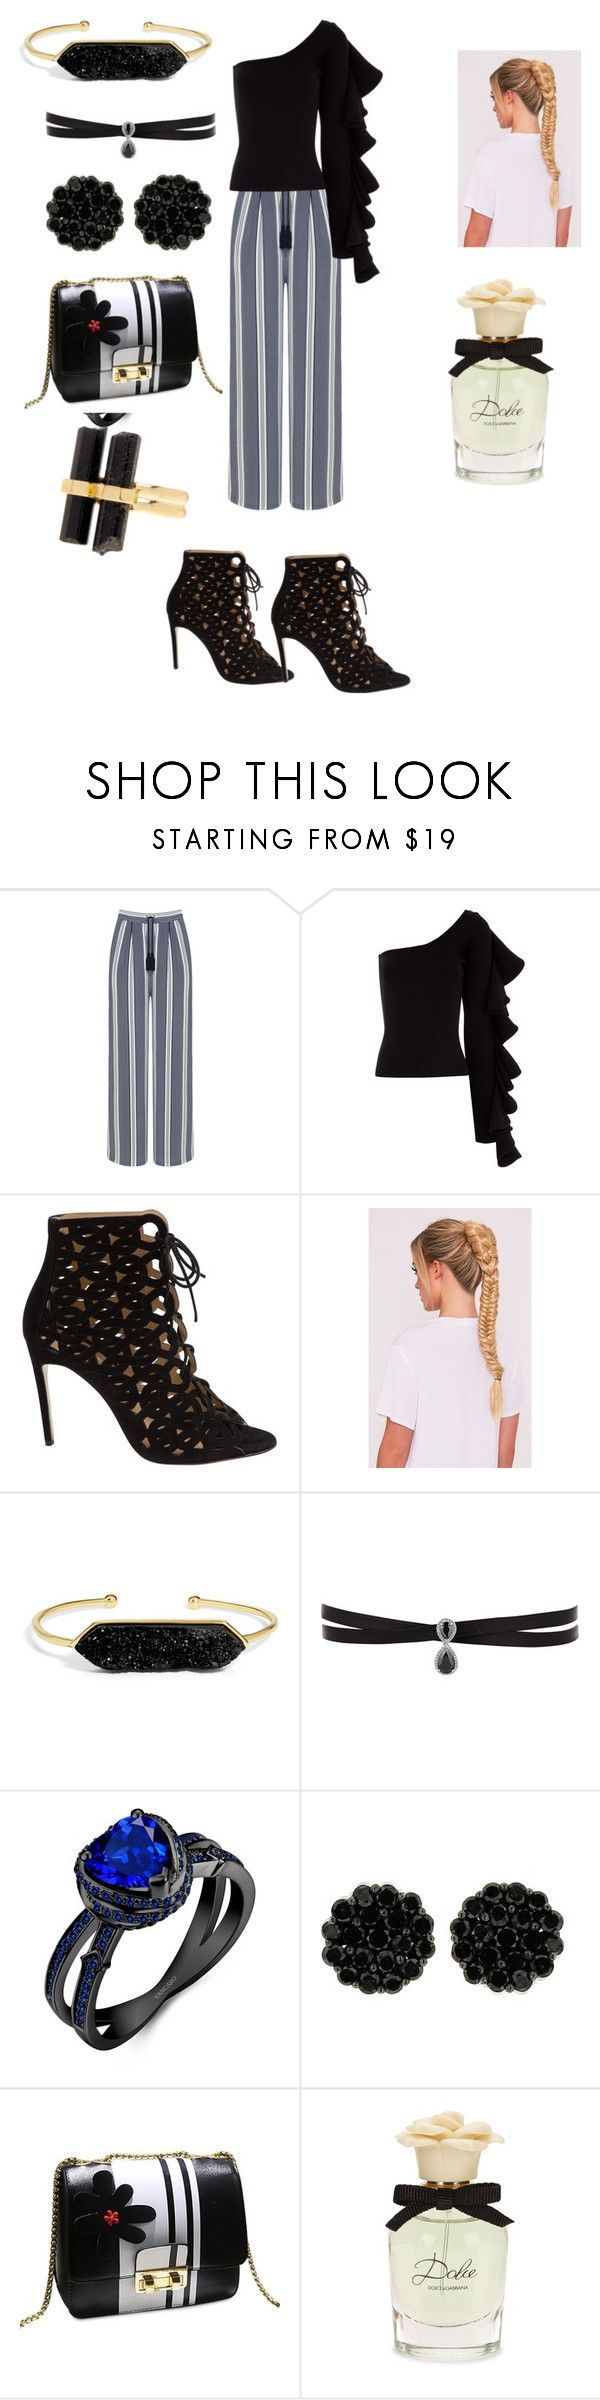 """Untitled #214"" by susanaxalex ❤ liked on Polyvore featuring Manon Baptiste, Beaufille, Bionda Castana, BaubleBar, Fallon, Dolce&Gabbana and House of Harlow 1960"